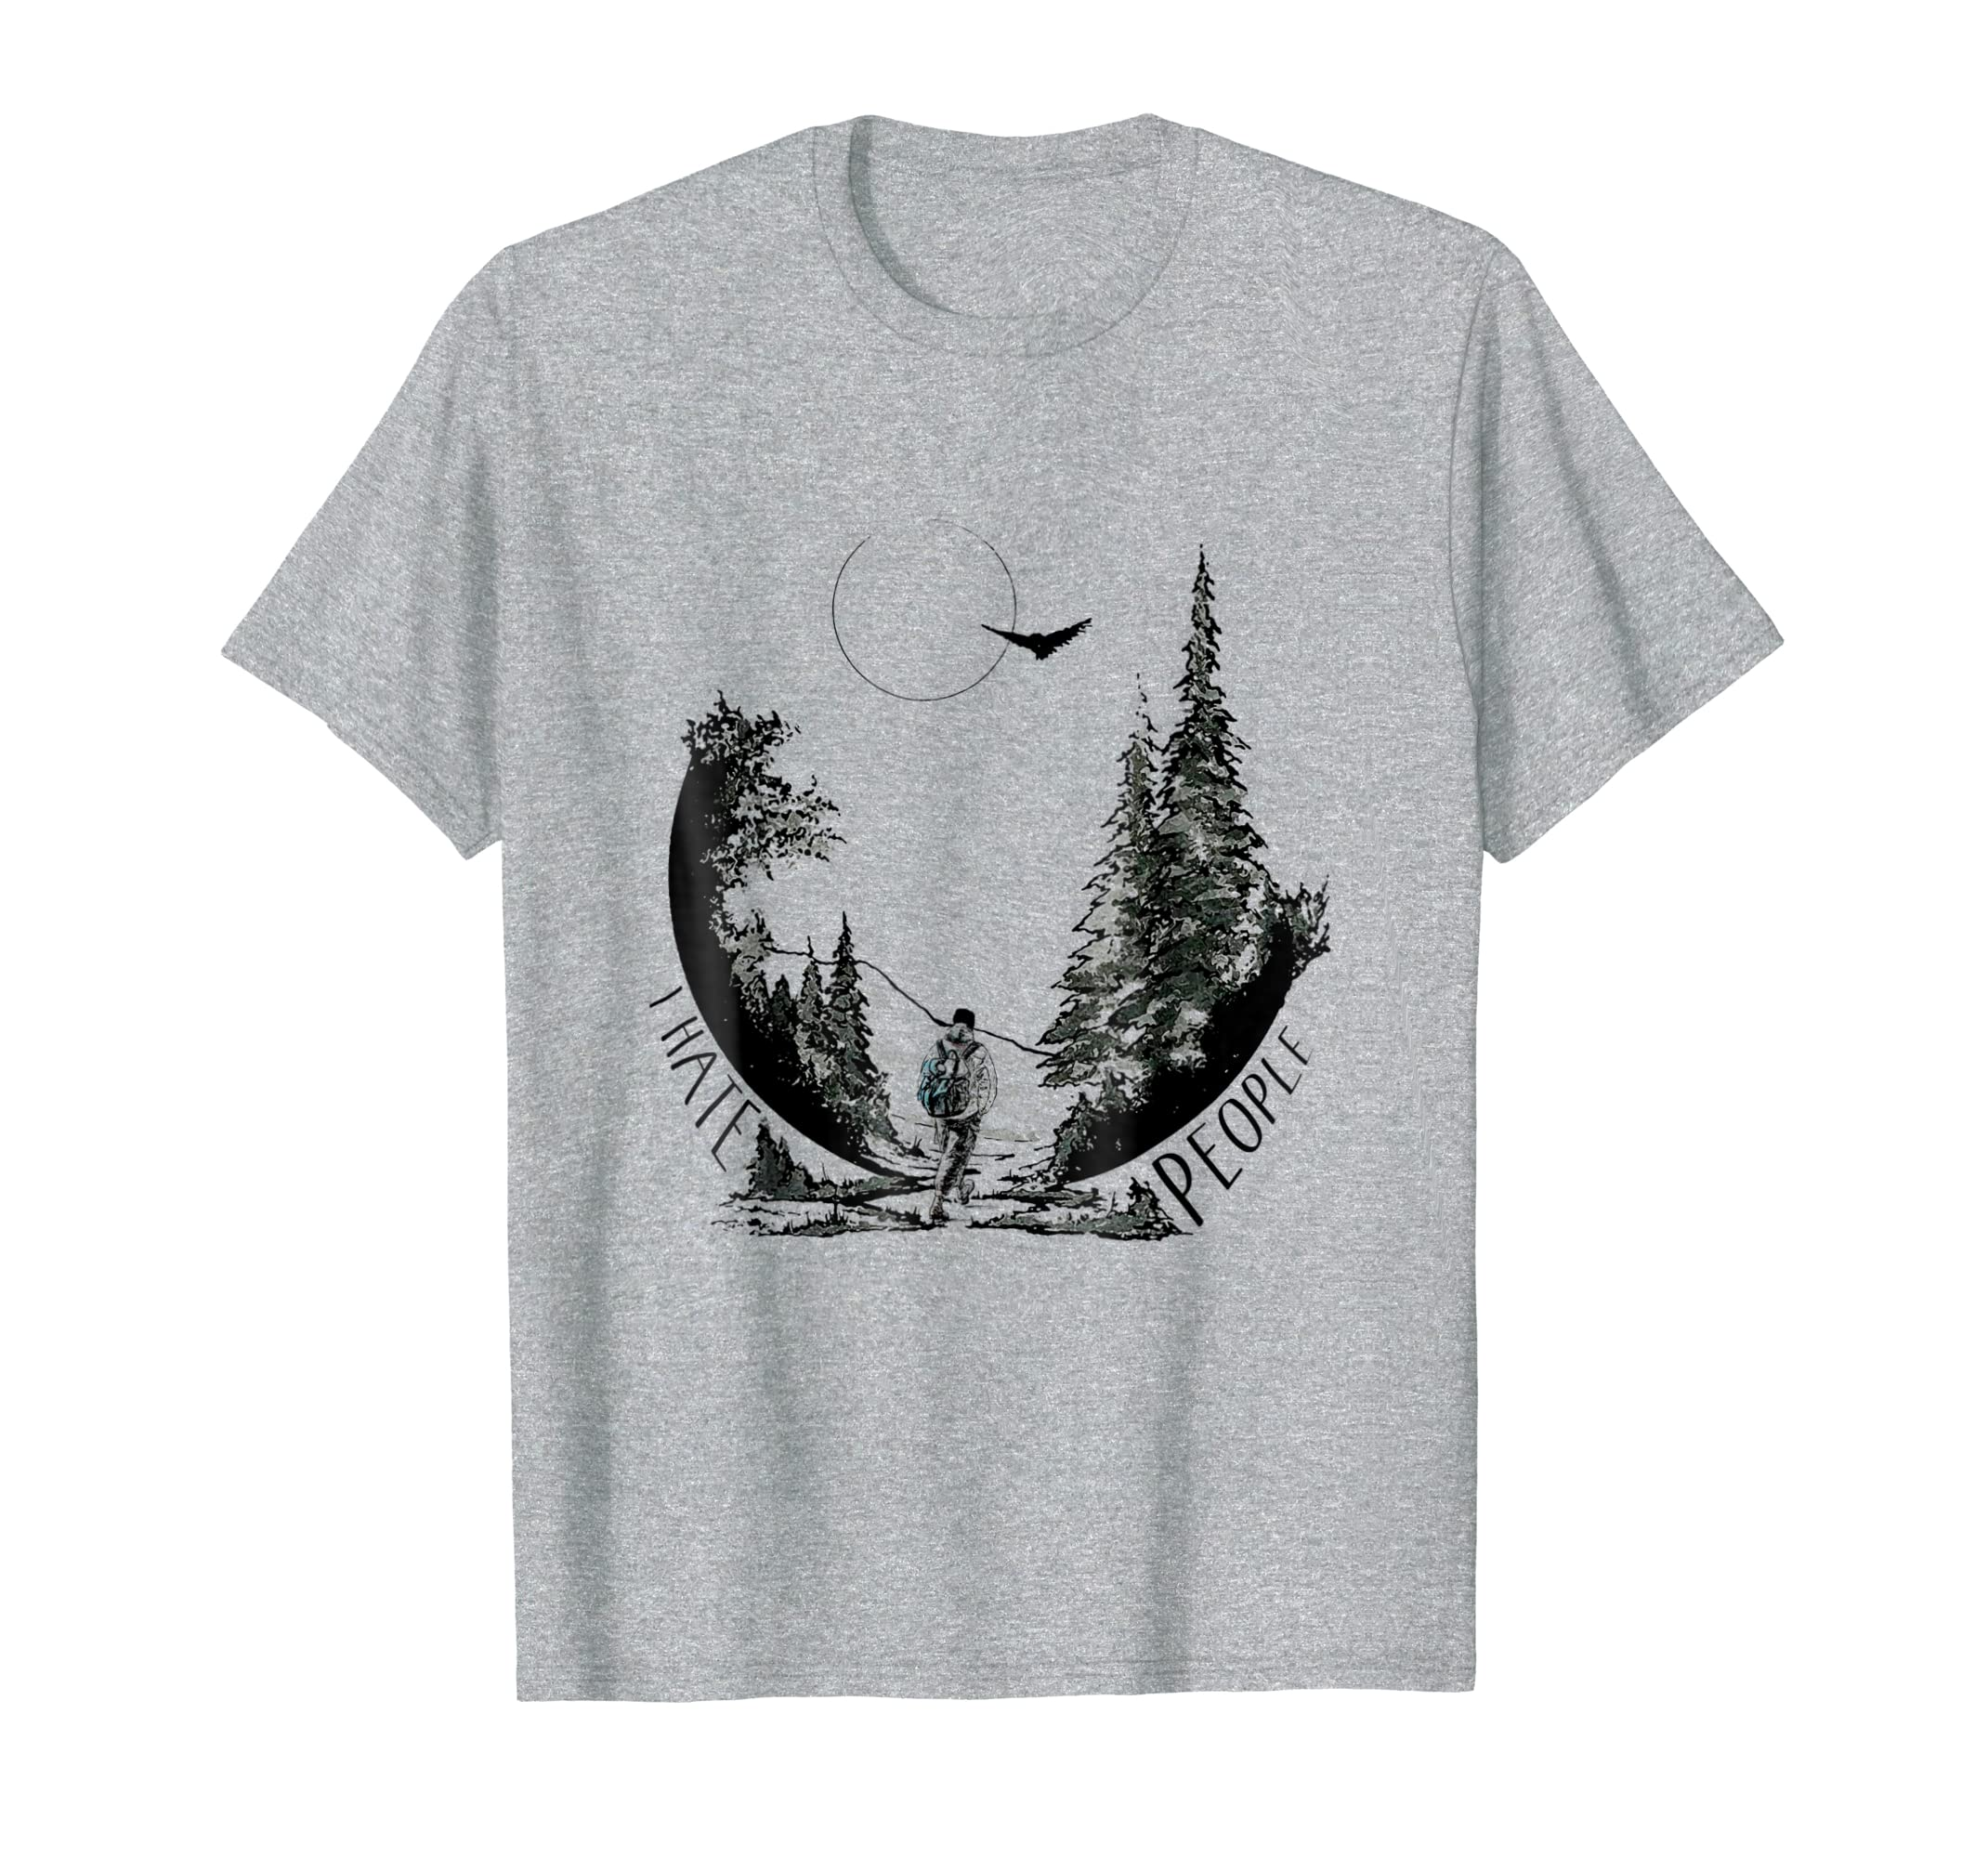 5d1102e66 Amazon.com: I hate people camping and hiking t-shirt: Clothing